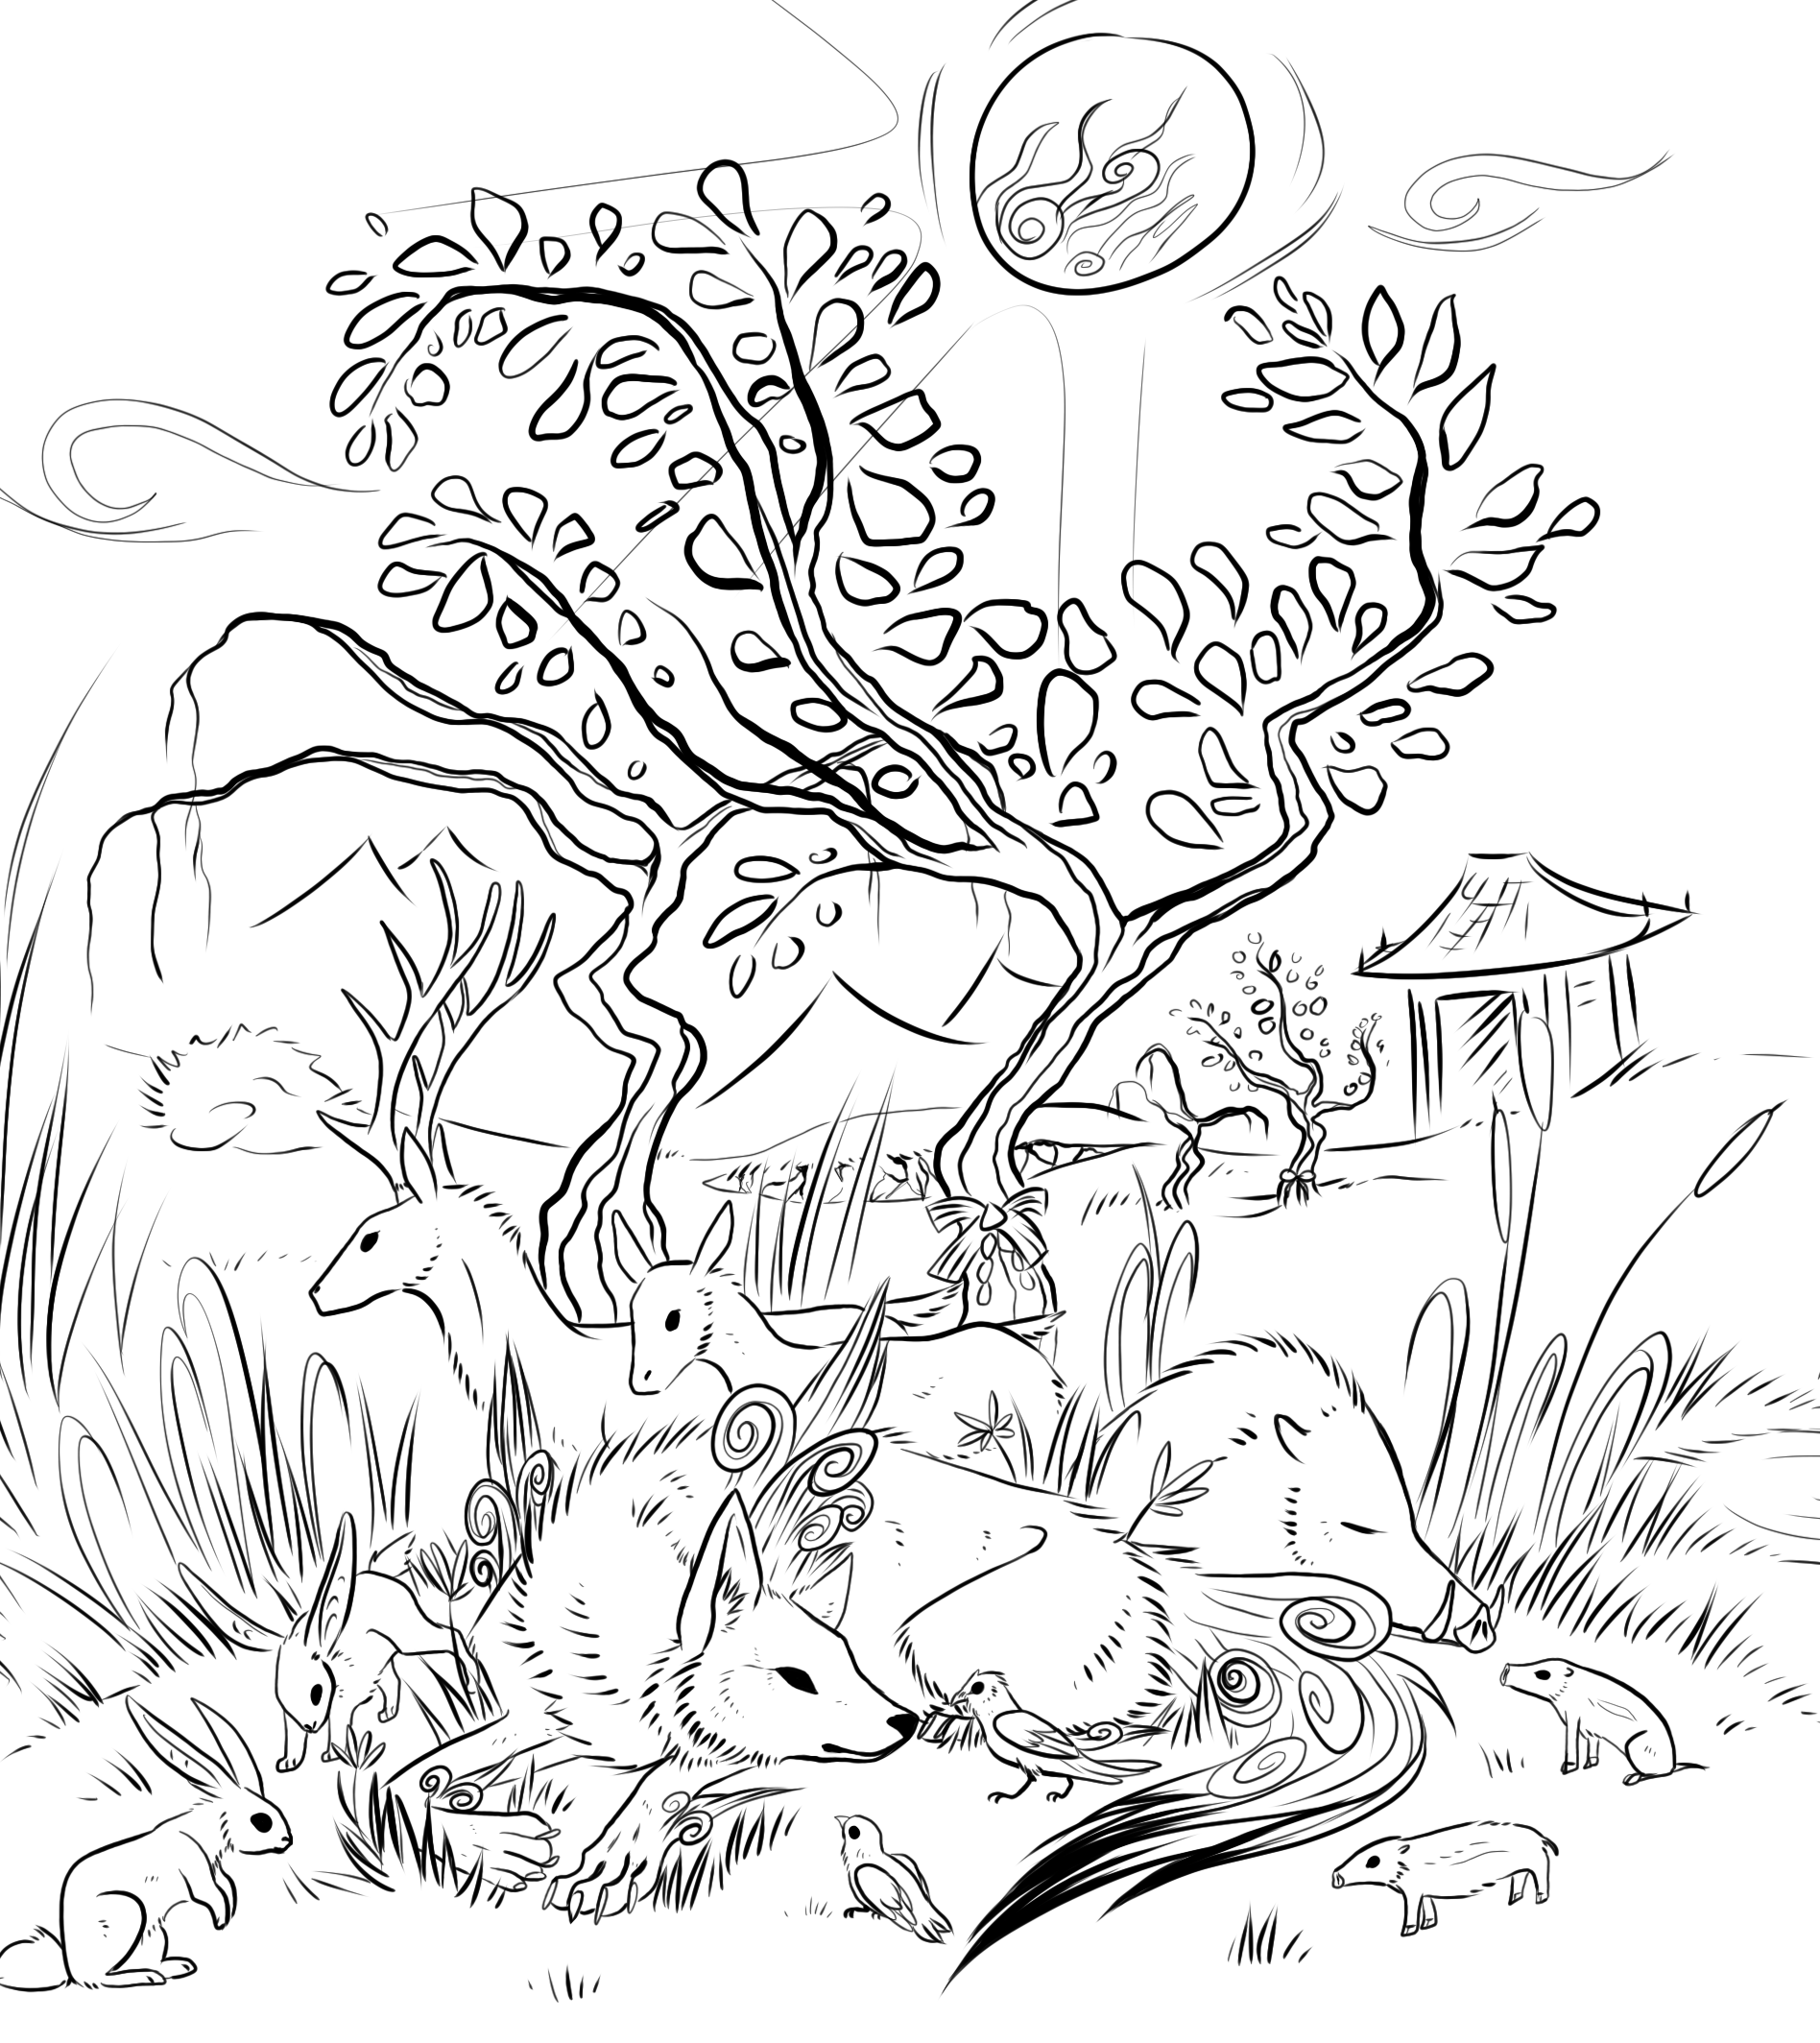 free_okami_scene_lineart_by_darkside_cookie-d6fo72l.png (1896×2128)